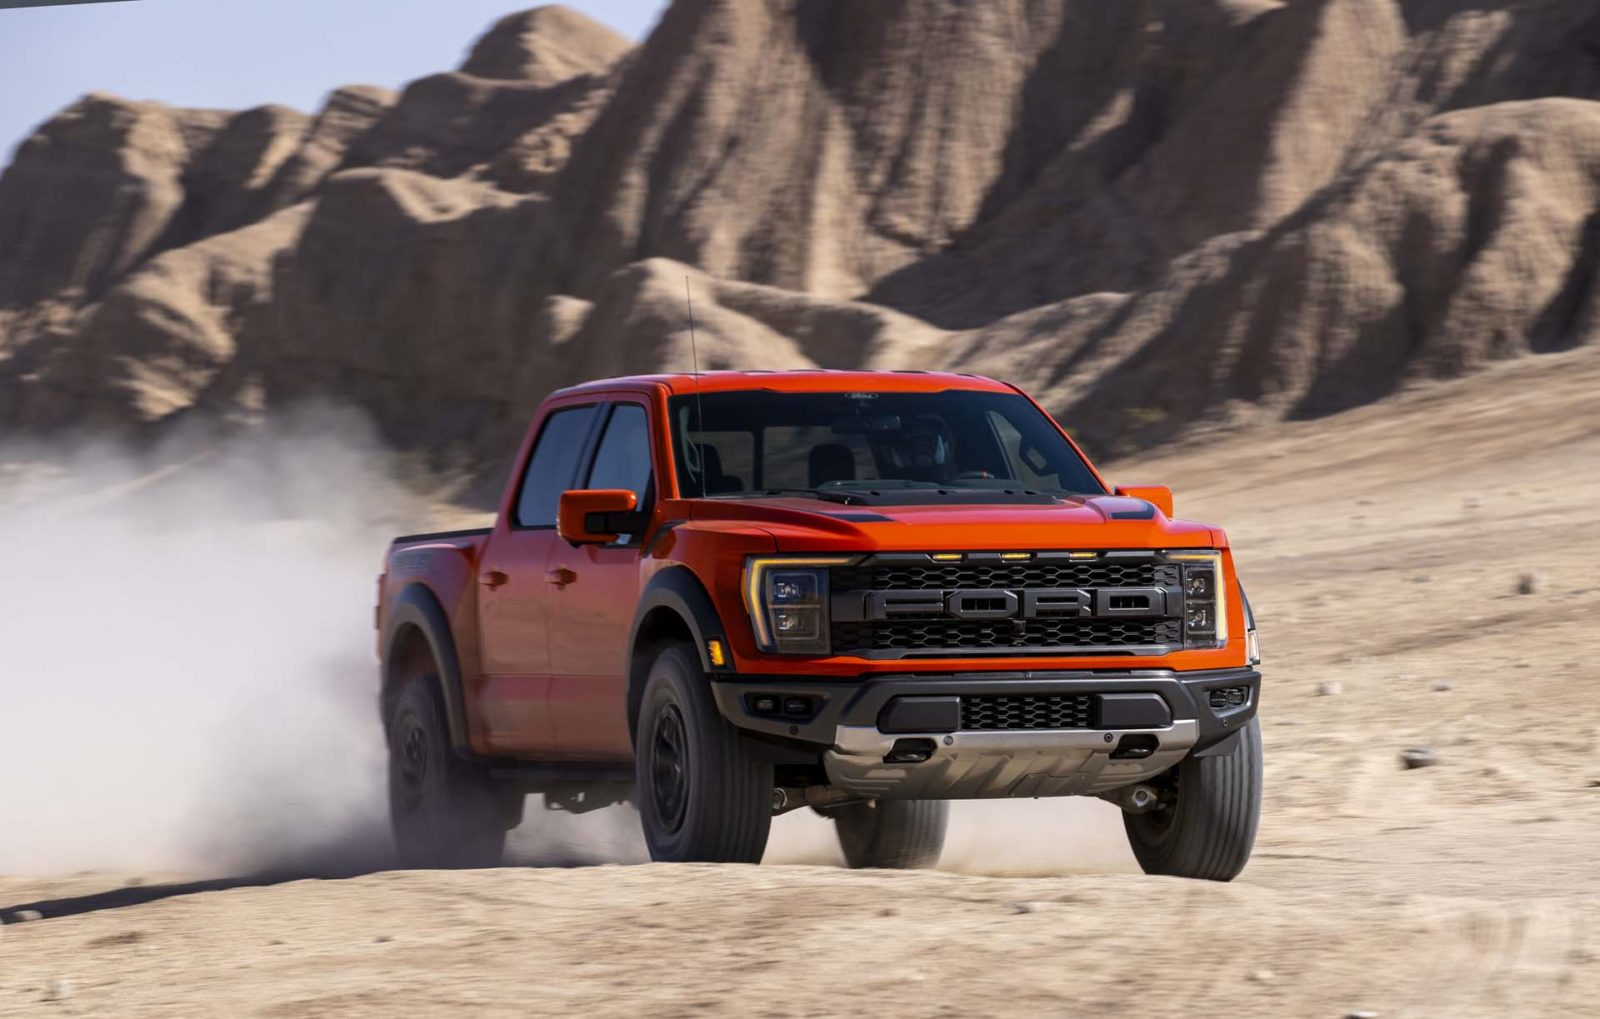 2021-ford-f-150-raptor-preview:-off-roader-gets-rear-coil-springs,-37-inch-tires,-but-no-v-8-for-now